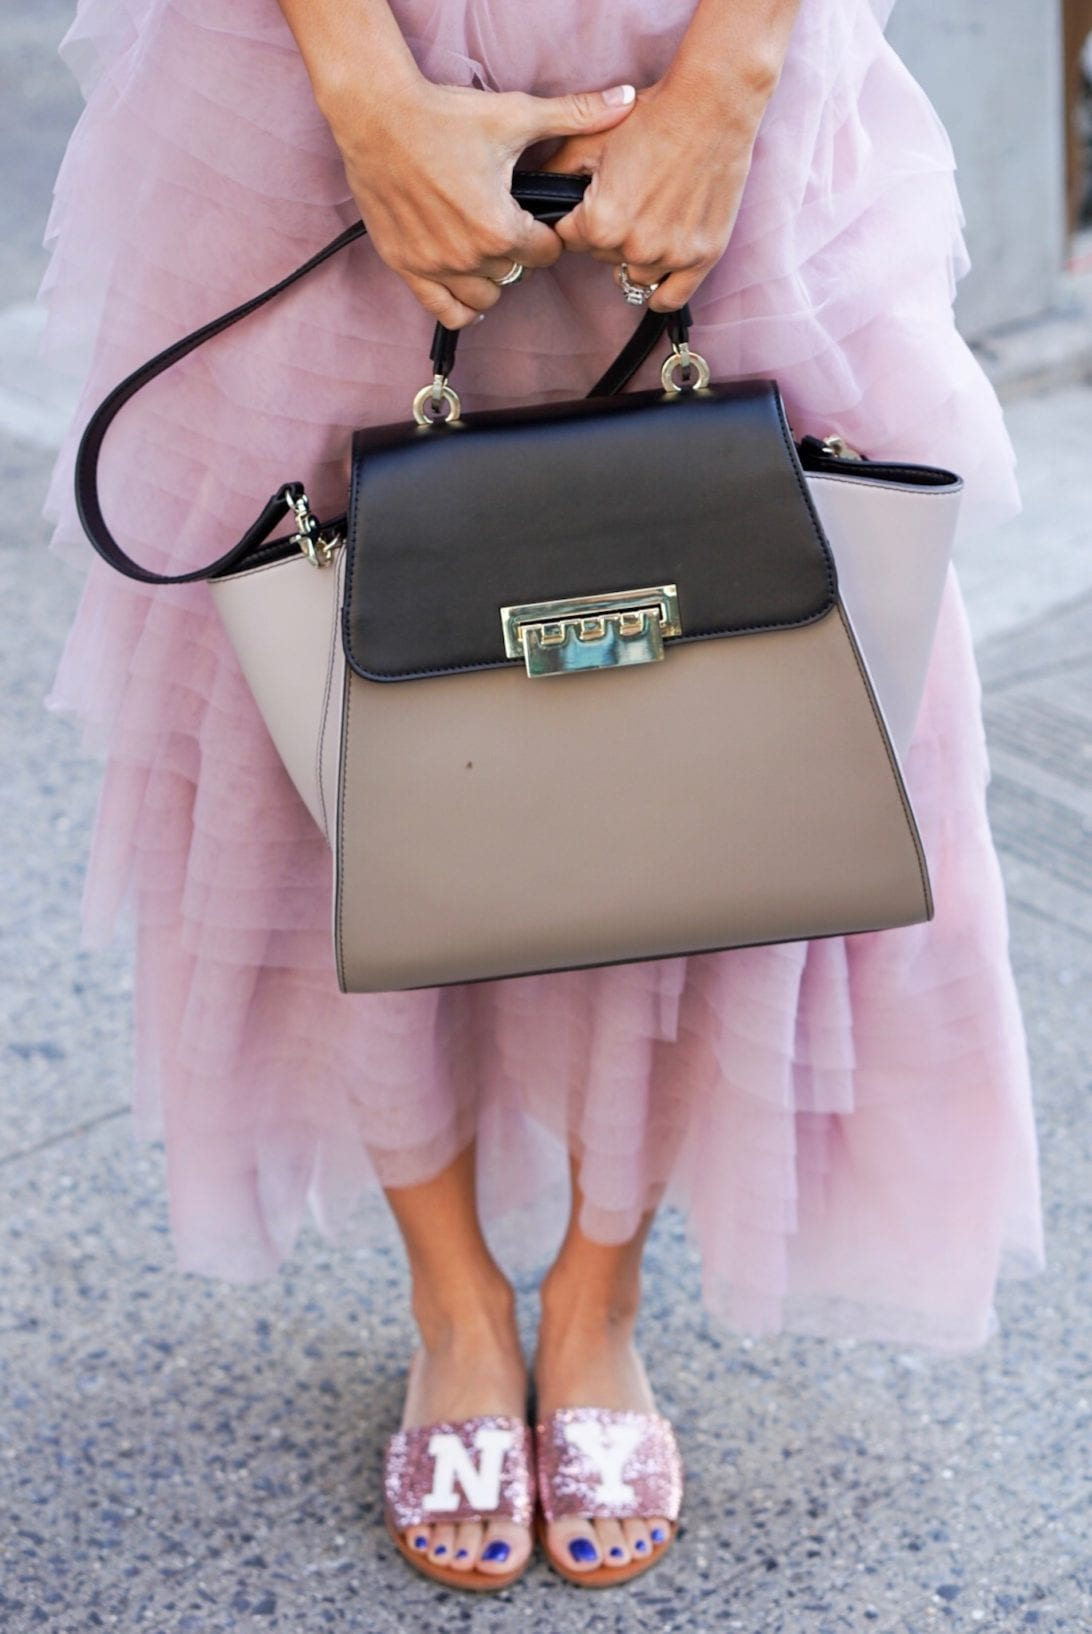 NYC STREET STYLE, New York FASHION WEEK, New York CITY, NYFW 2017, NYFW STREET STYLE, STREET STYLE, FEMINIST, TULLE SKIRT, SEX AND THE CITY OUTFIT, NY GLITTER FLATS, ZAC ZAC POSEN BAG